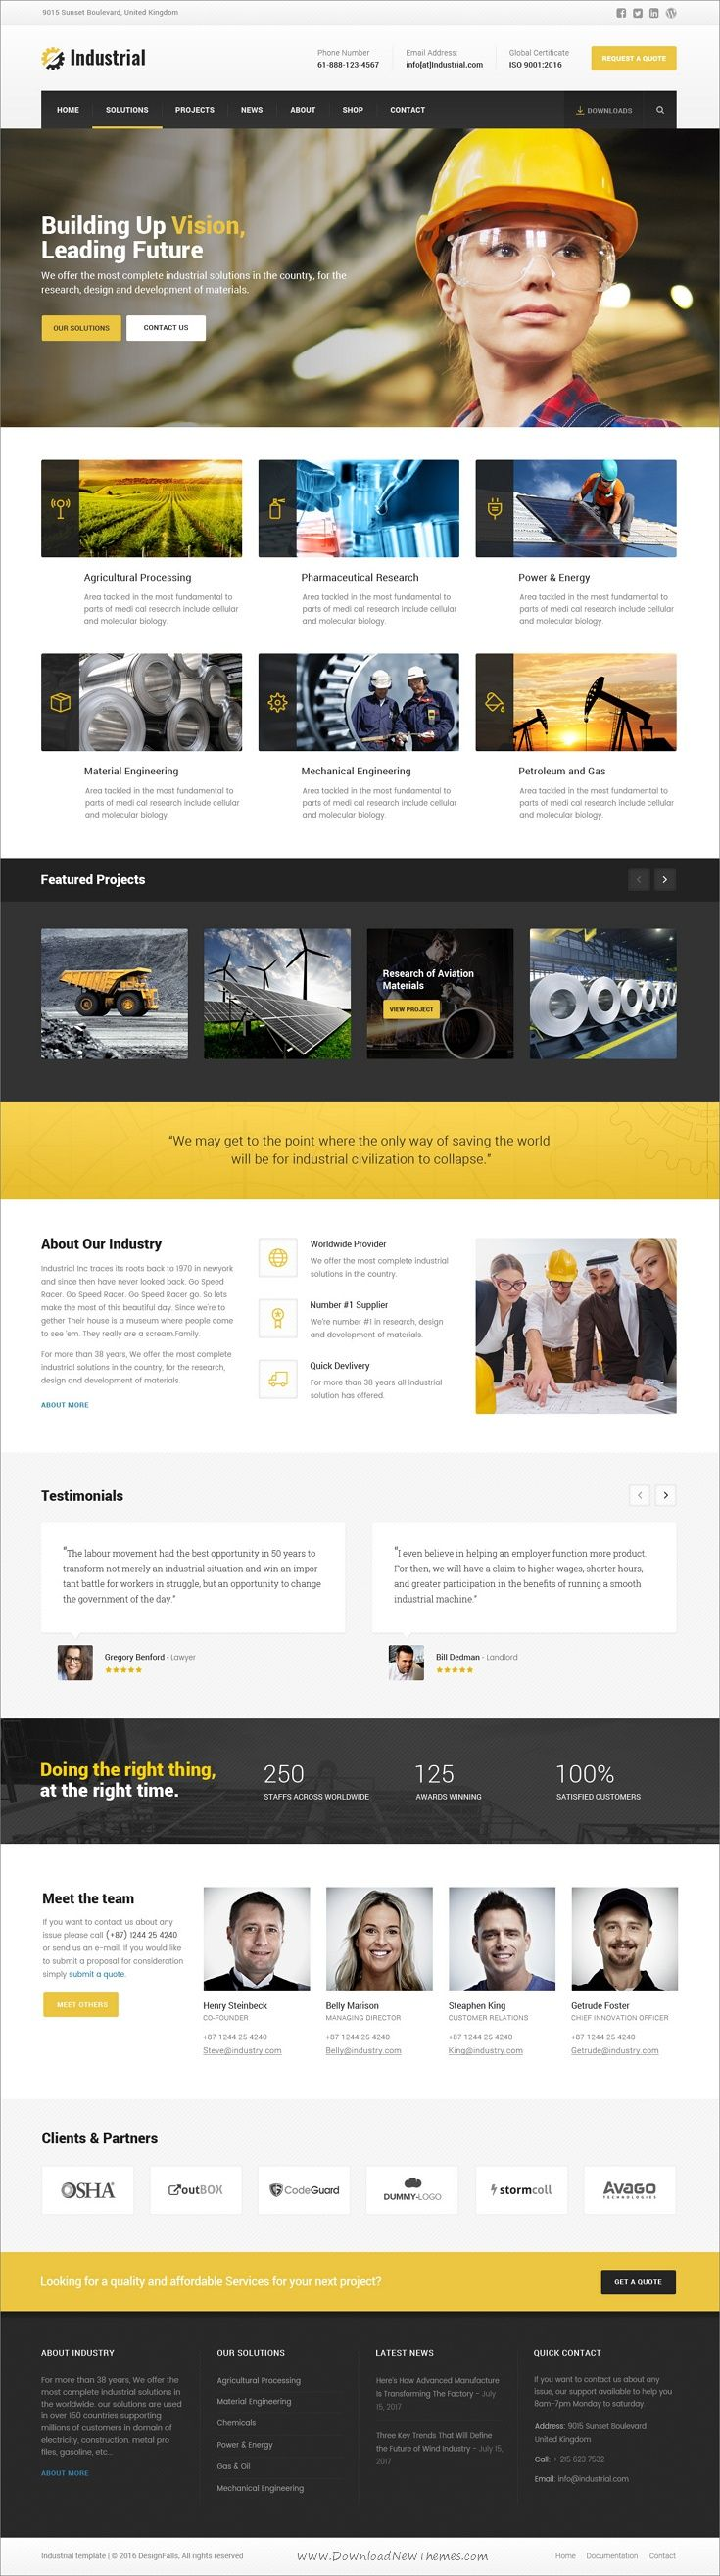 Industrial is a wonderful #PSD template for #factory, industry and #engineering companies website with 3 homepage and 22 organized PSD pages download now➩ https://themeforest.net/item/industrial-factory-industry-engineering-psd-template/19454062?ref=Datasata